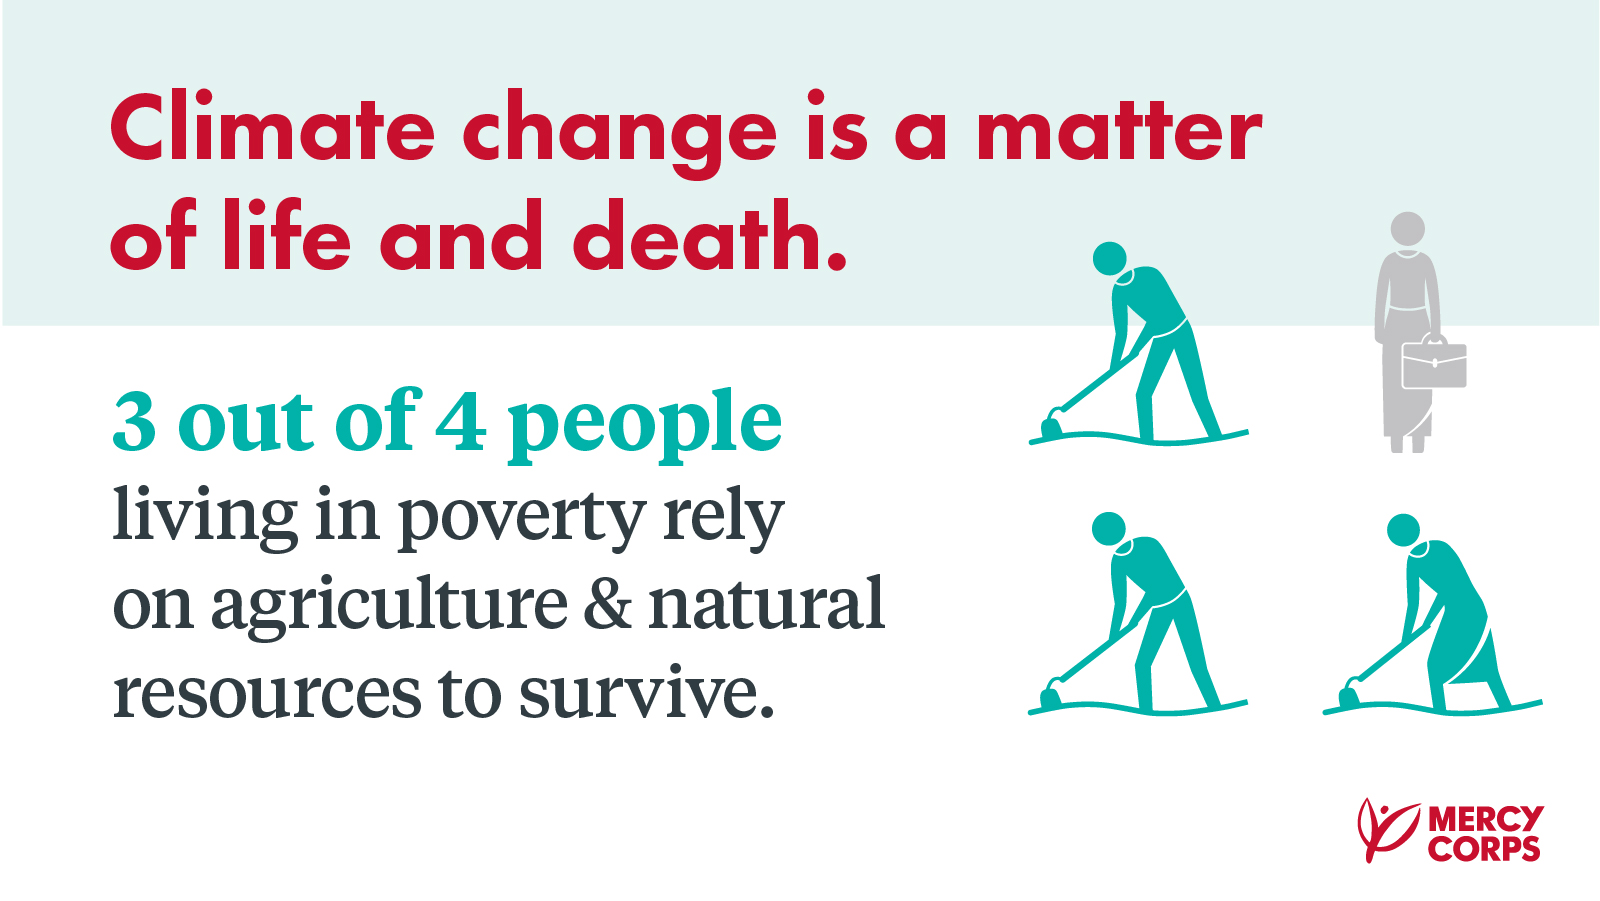 Climate change is a matter of life and death. 3 out of 4 people living in poverty rely on agriculture and natural resources to survive.